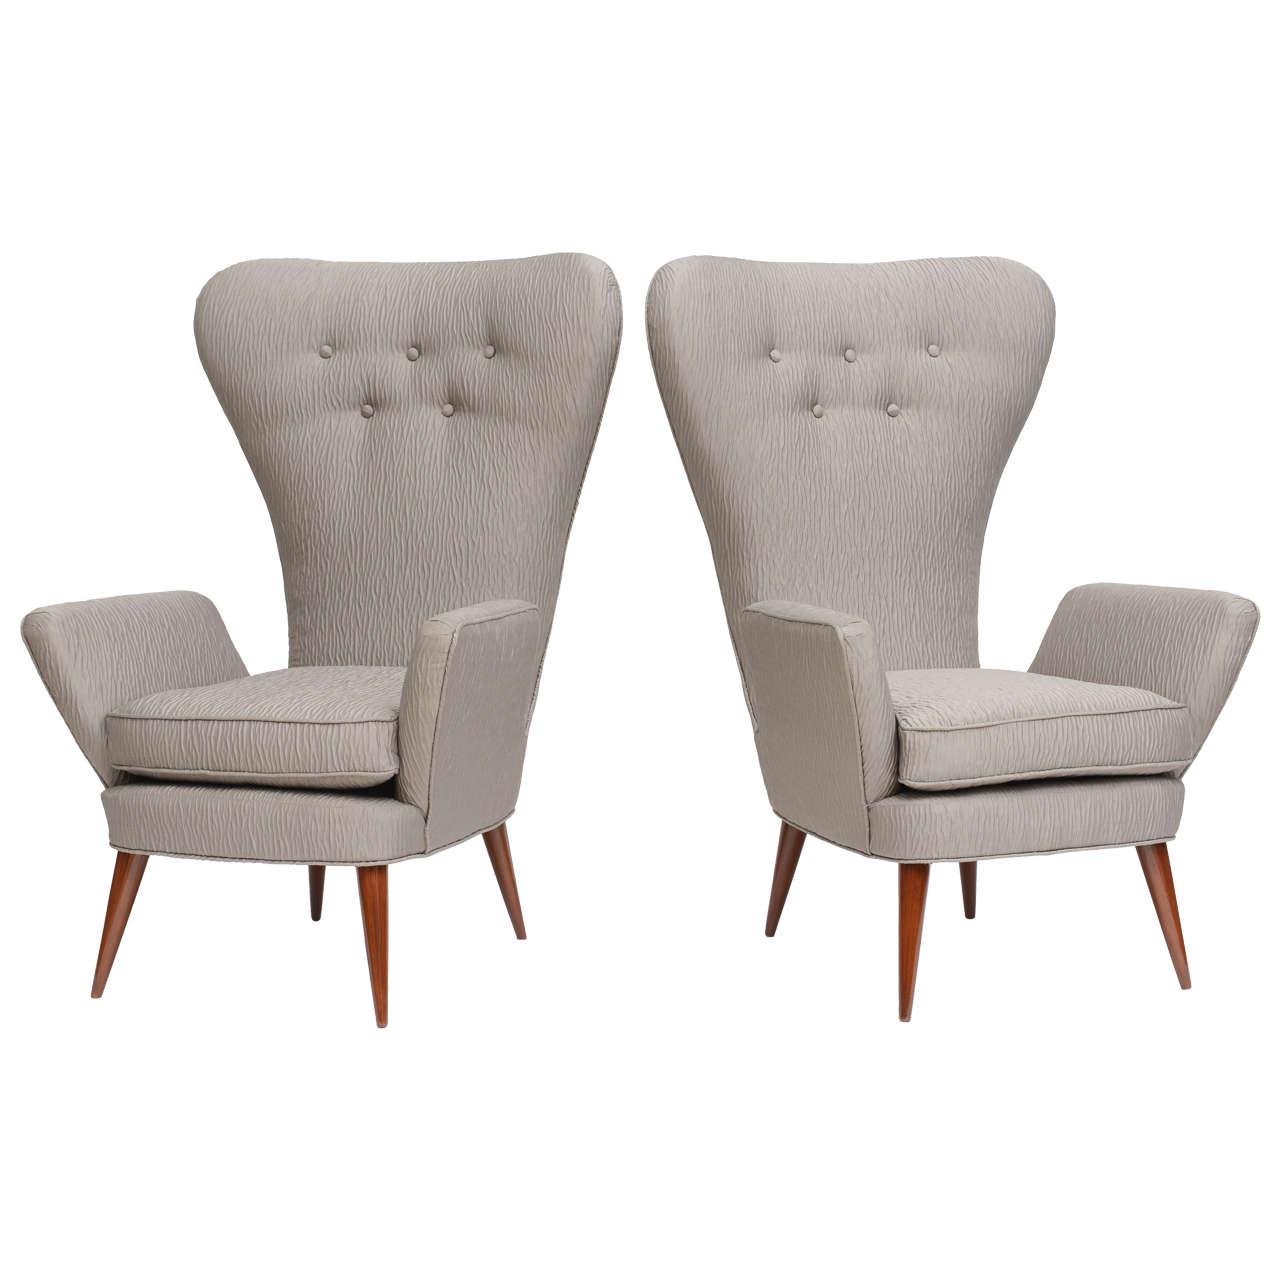 Pair of italian modern high back chairs italy 1